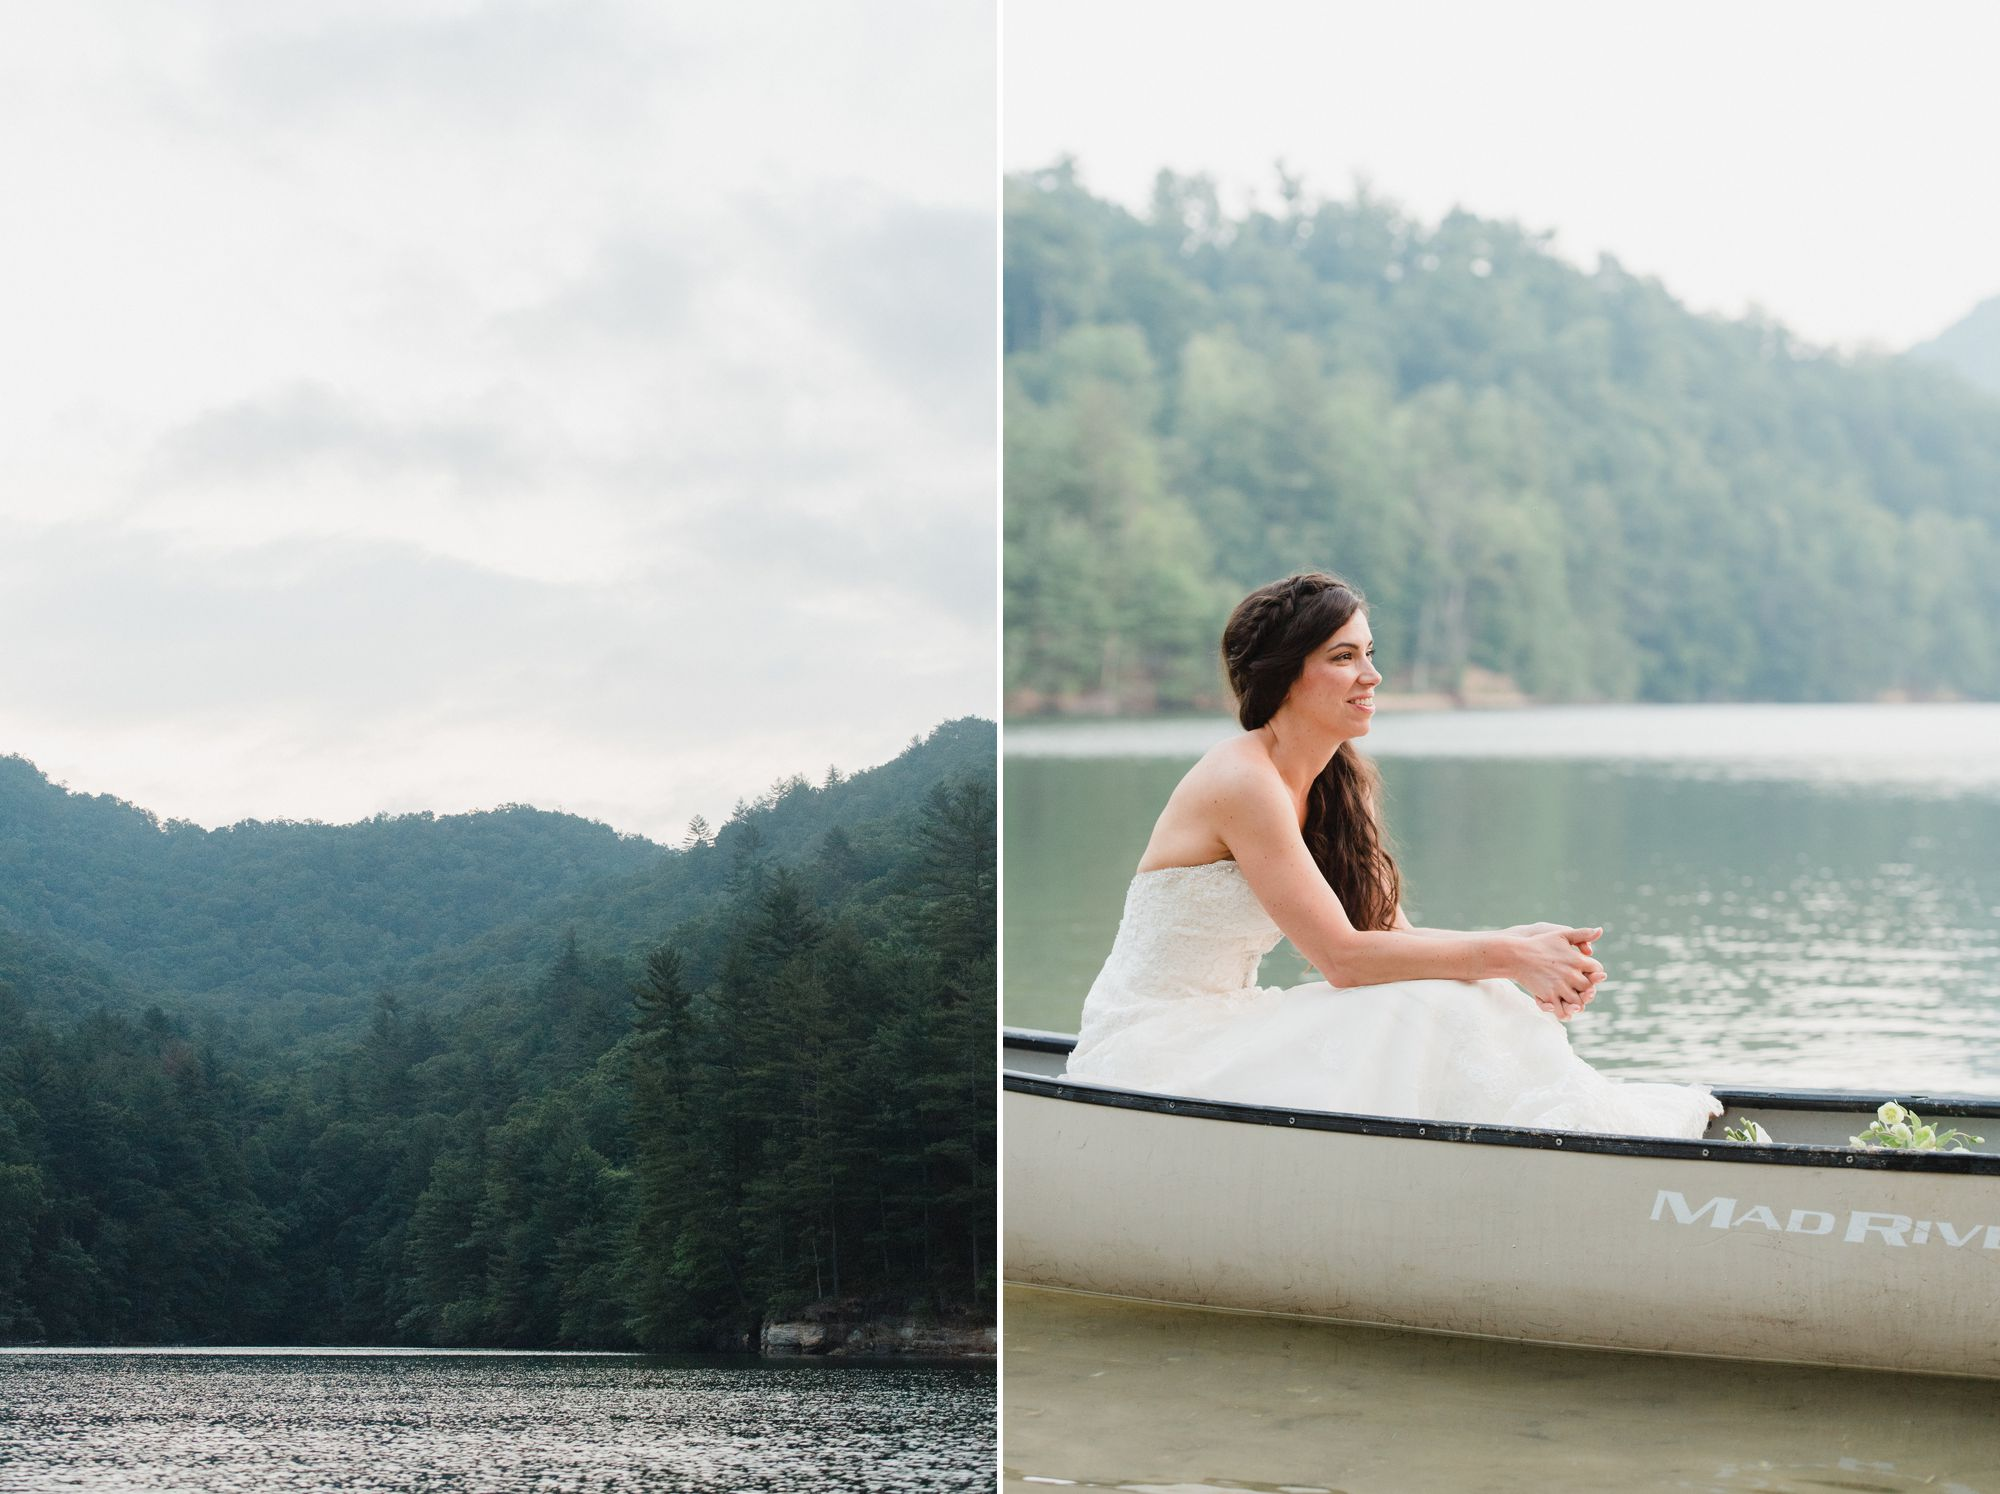 morning-after-wedding-session-in-canoe 2